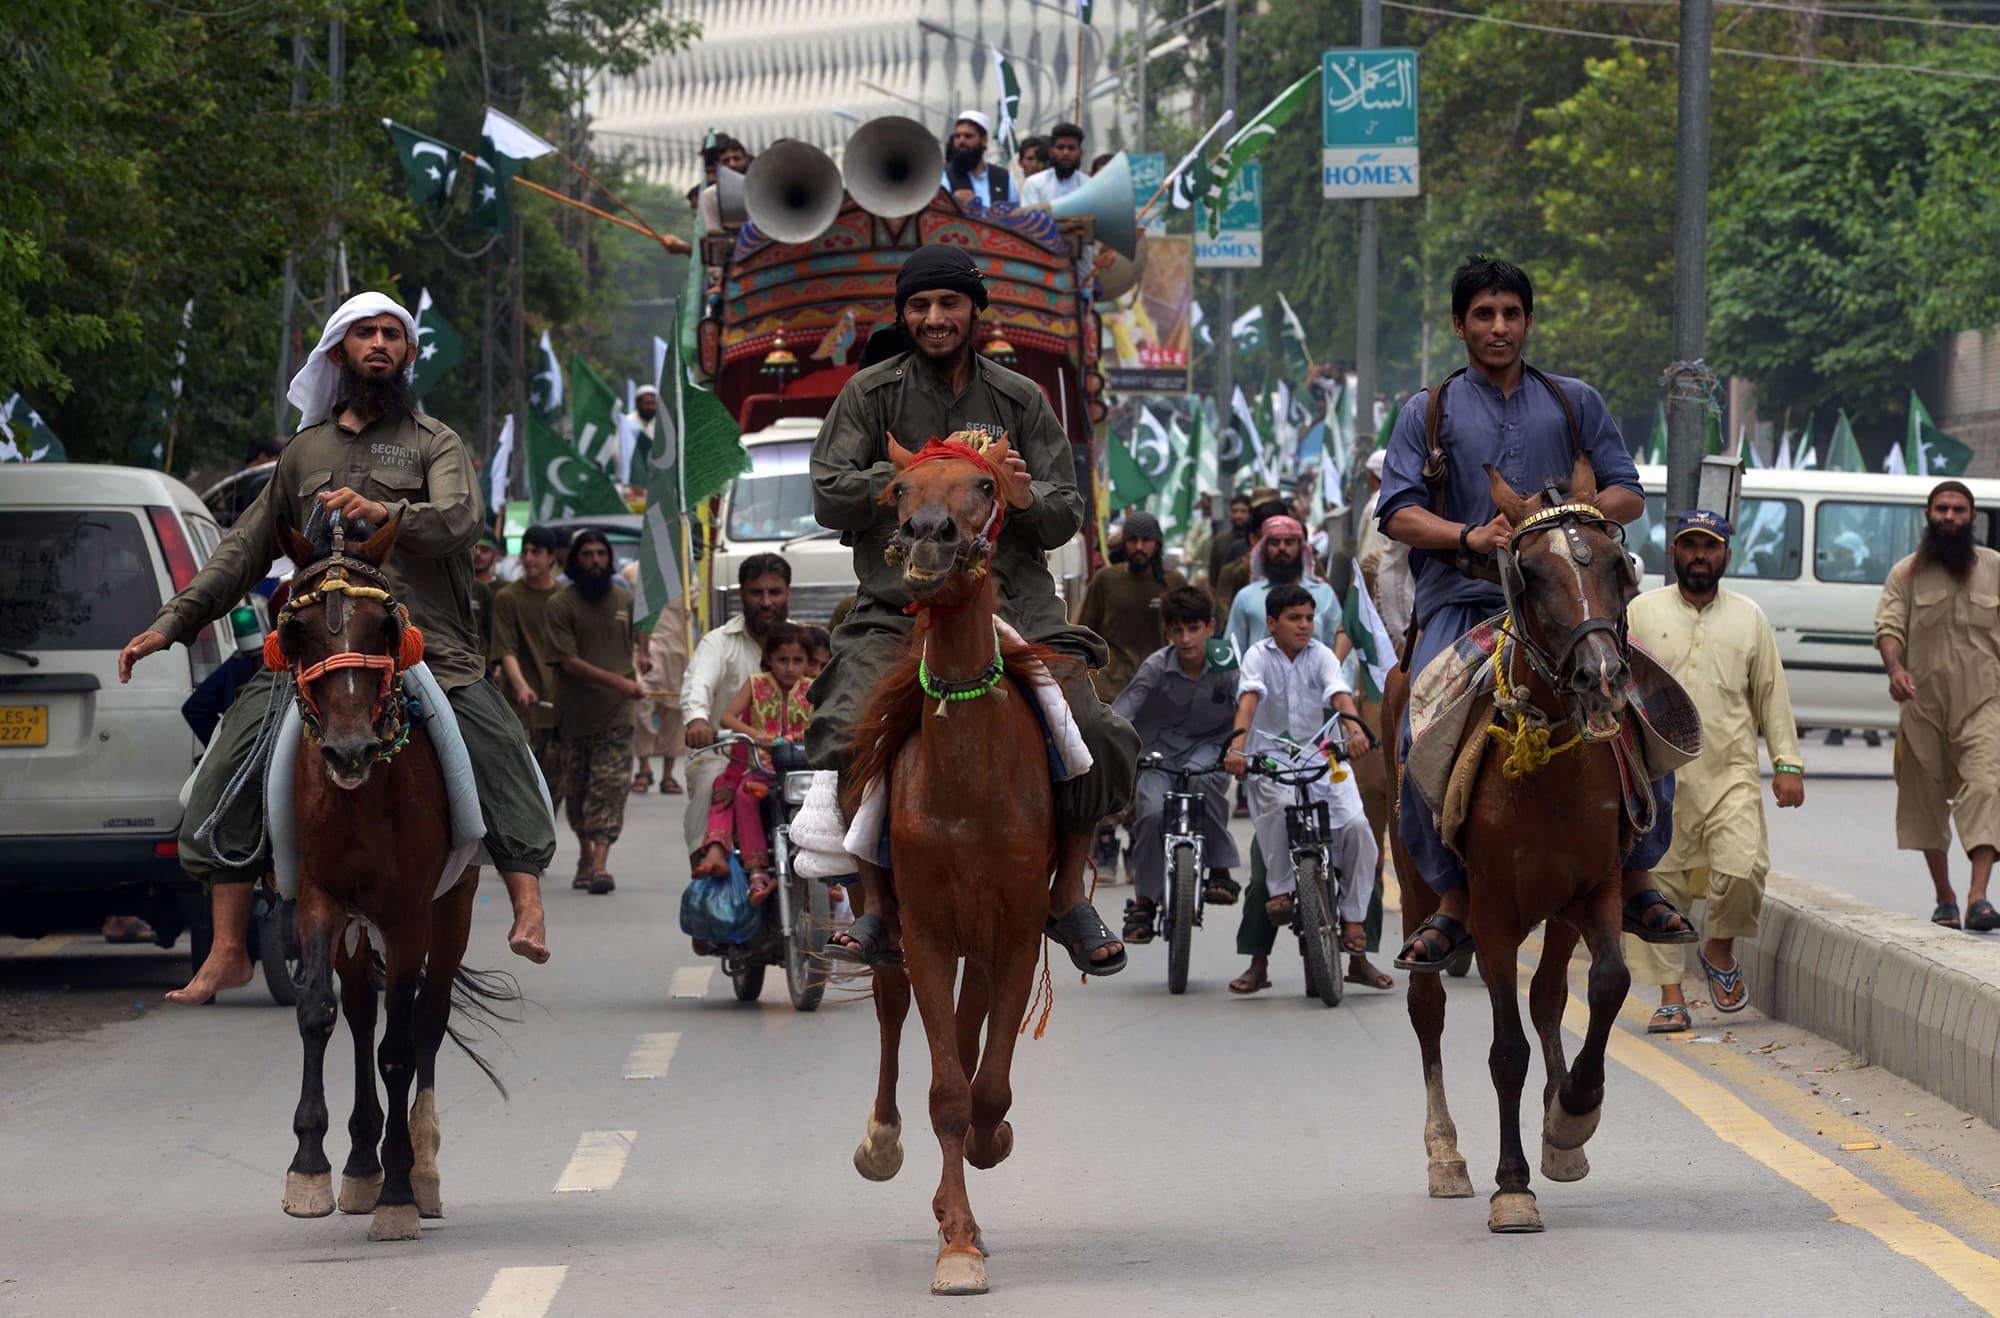 People march on horses during a rally marking the country's Independence Day in Peshawar. — AFP